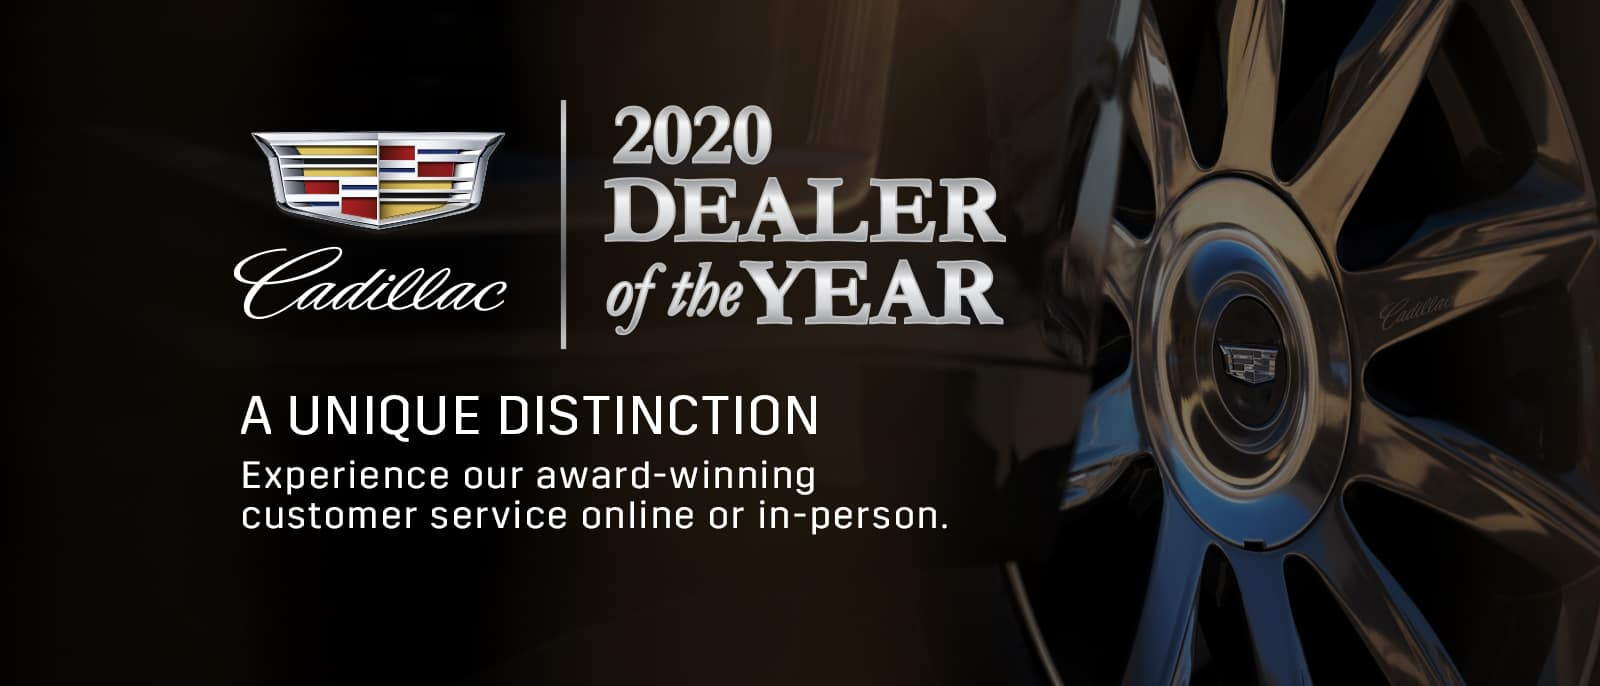 2020 Dealer of the Year banner